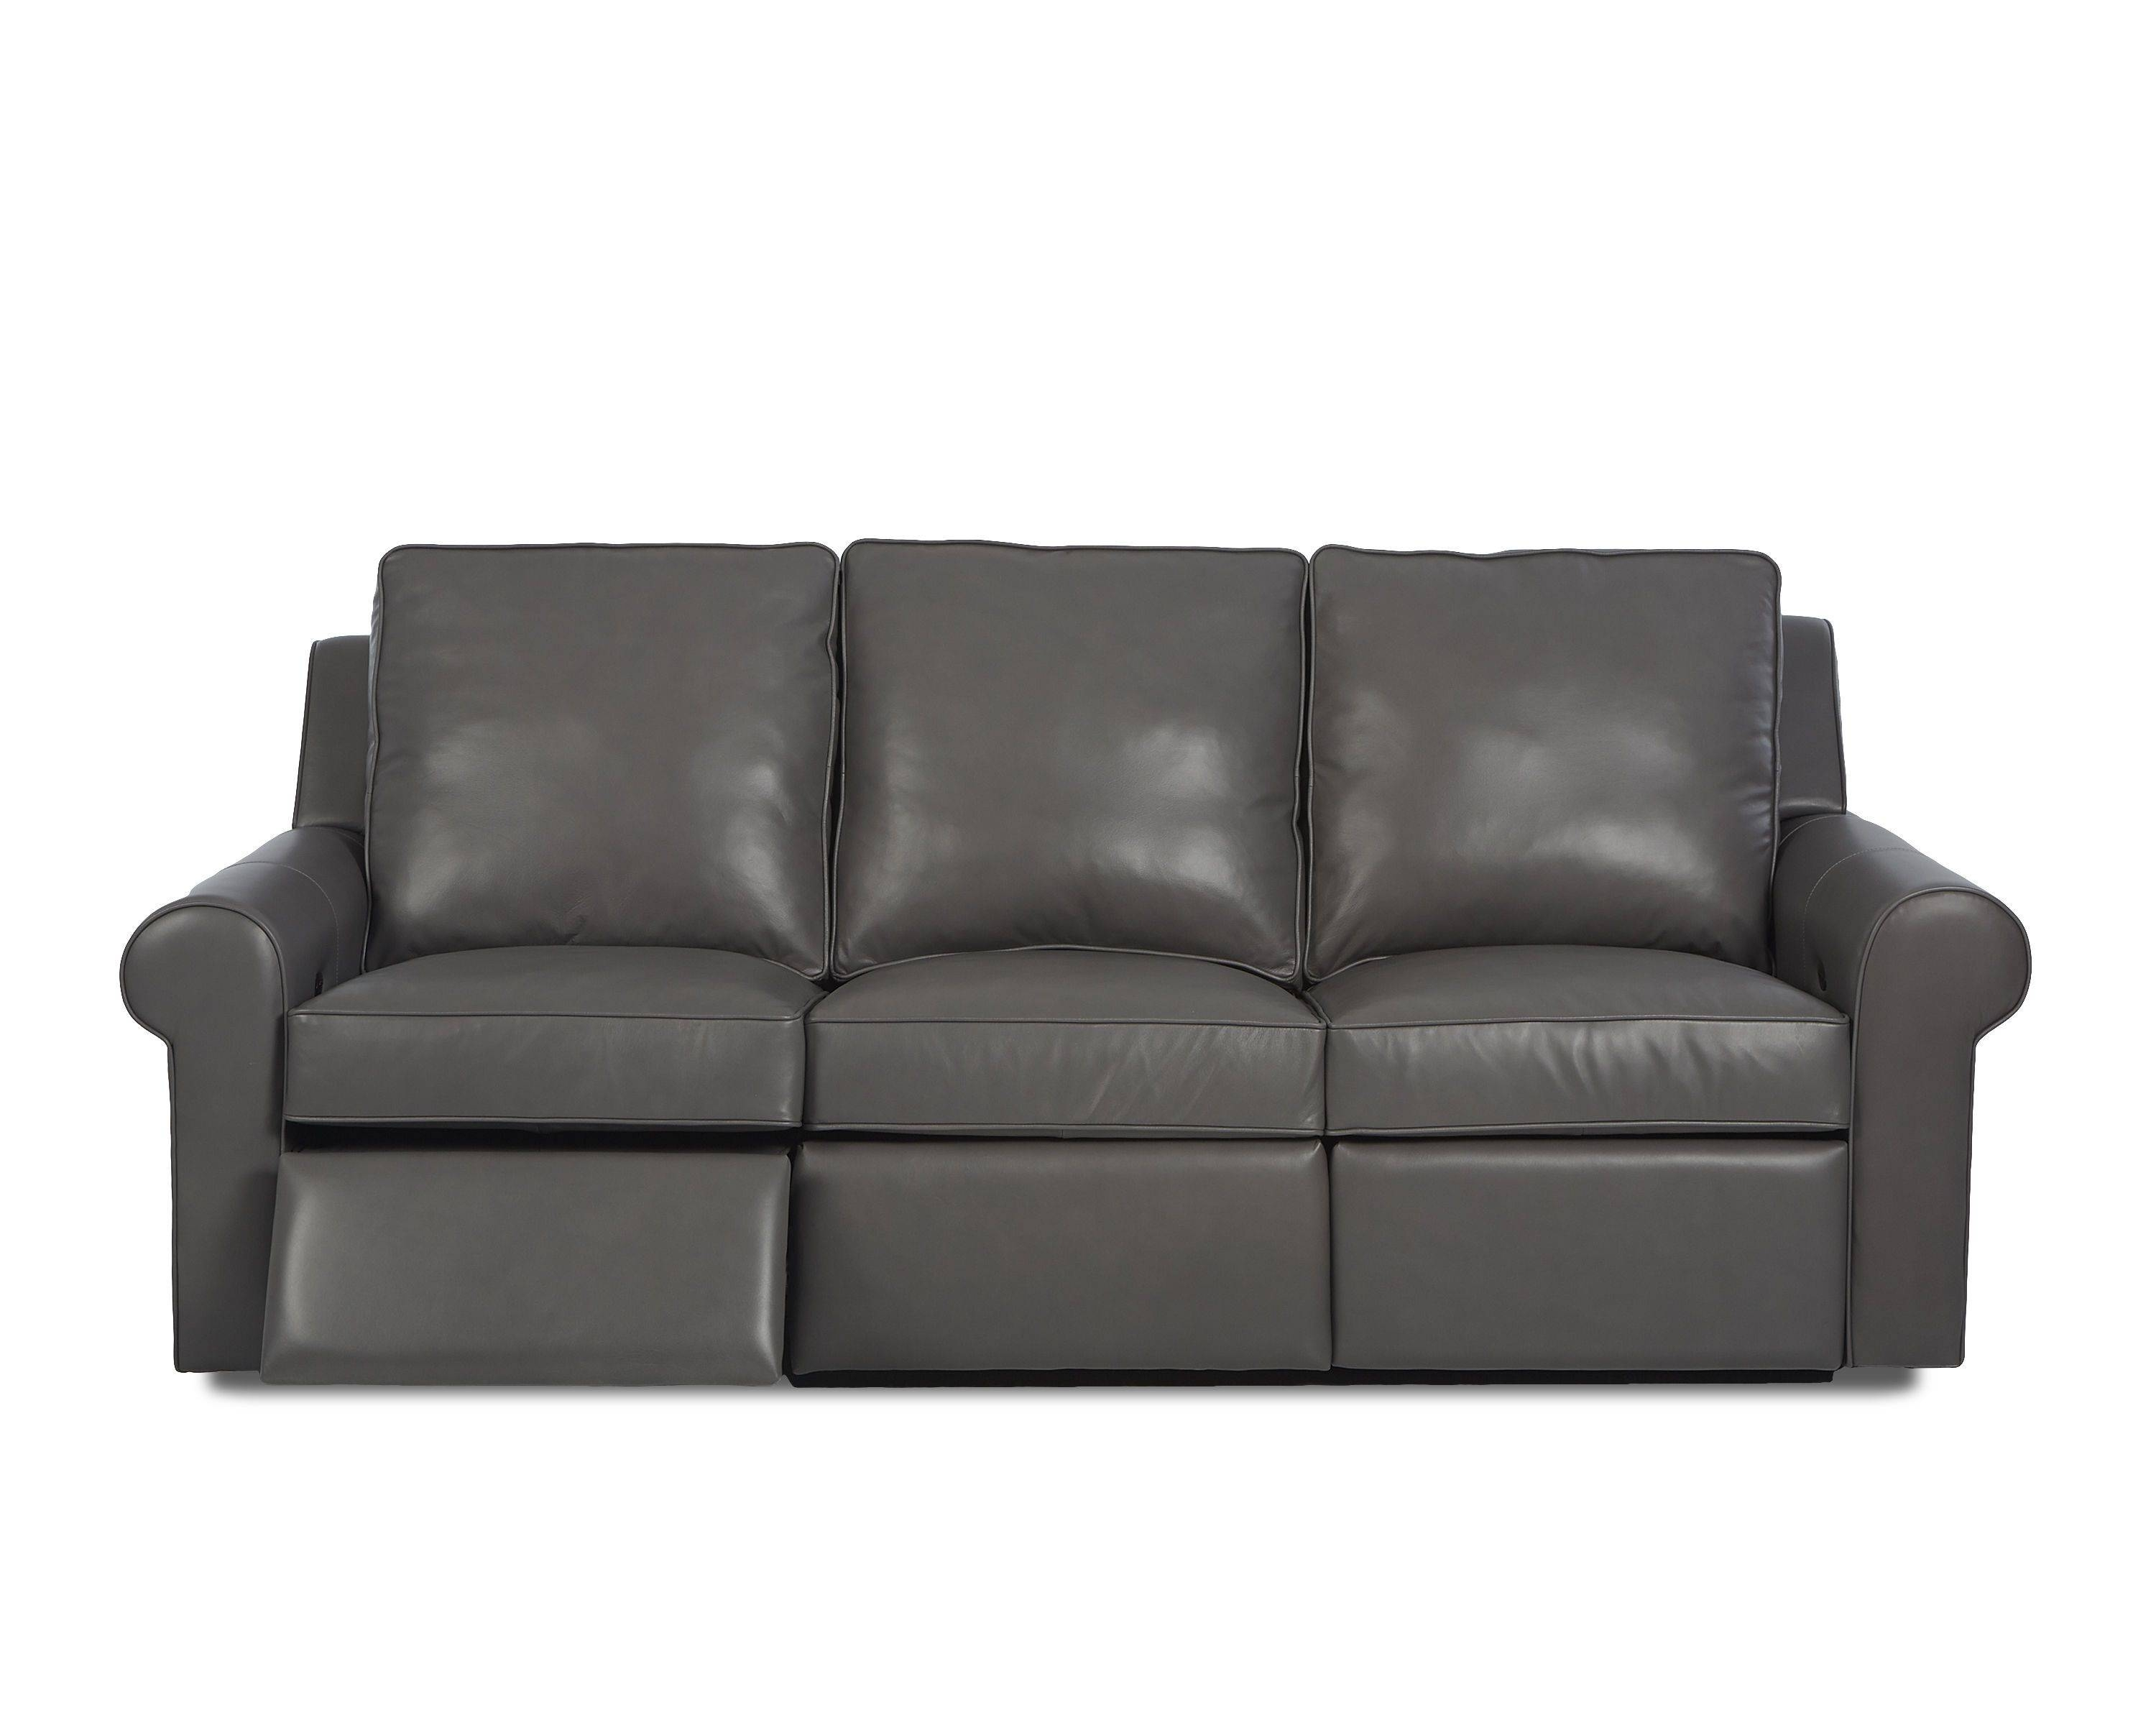 Bauhaus Sectional Sofas - Leather Sectional Sofa within Bauhaus Sectional Sofas (Image 10 of 30)